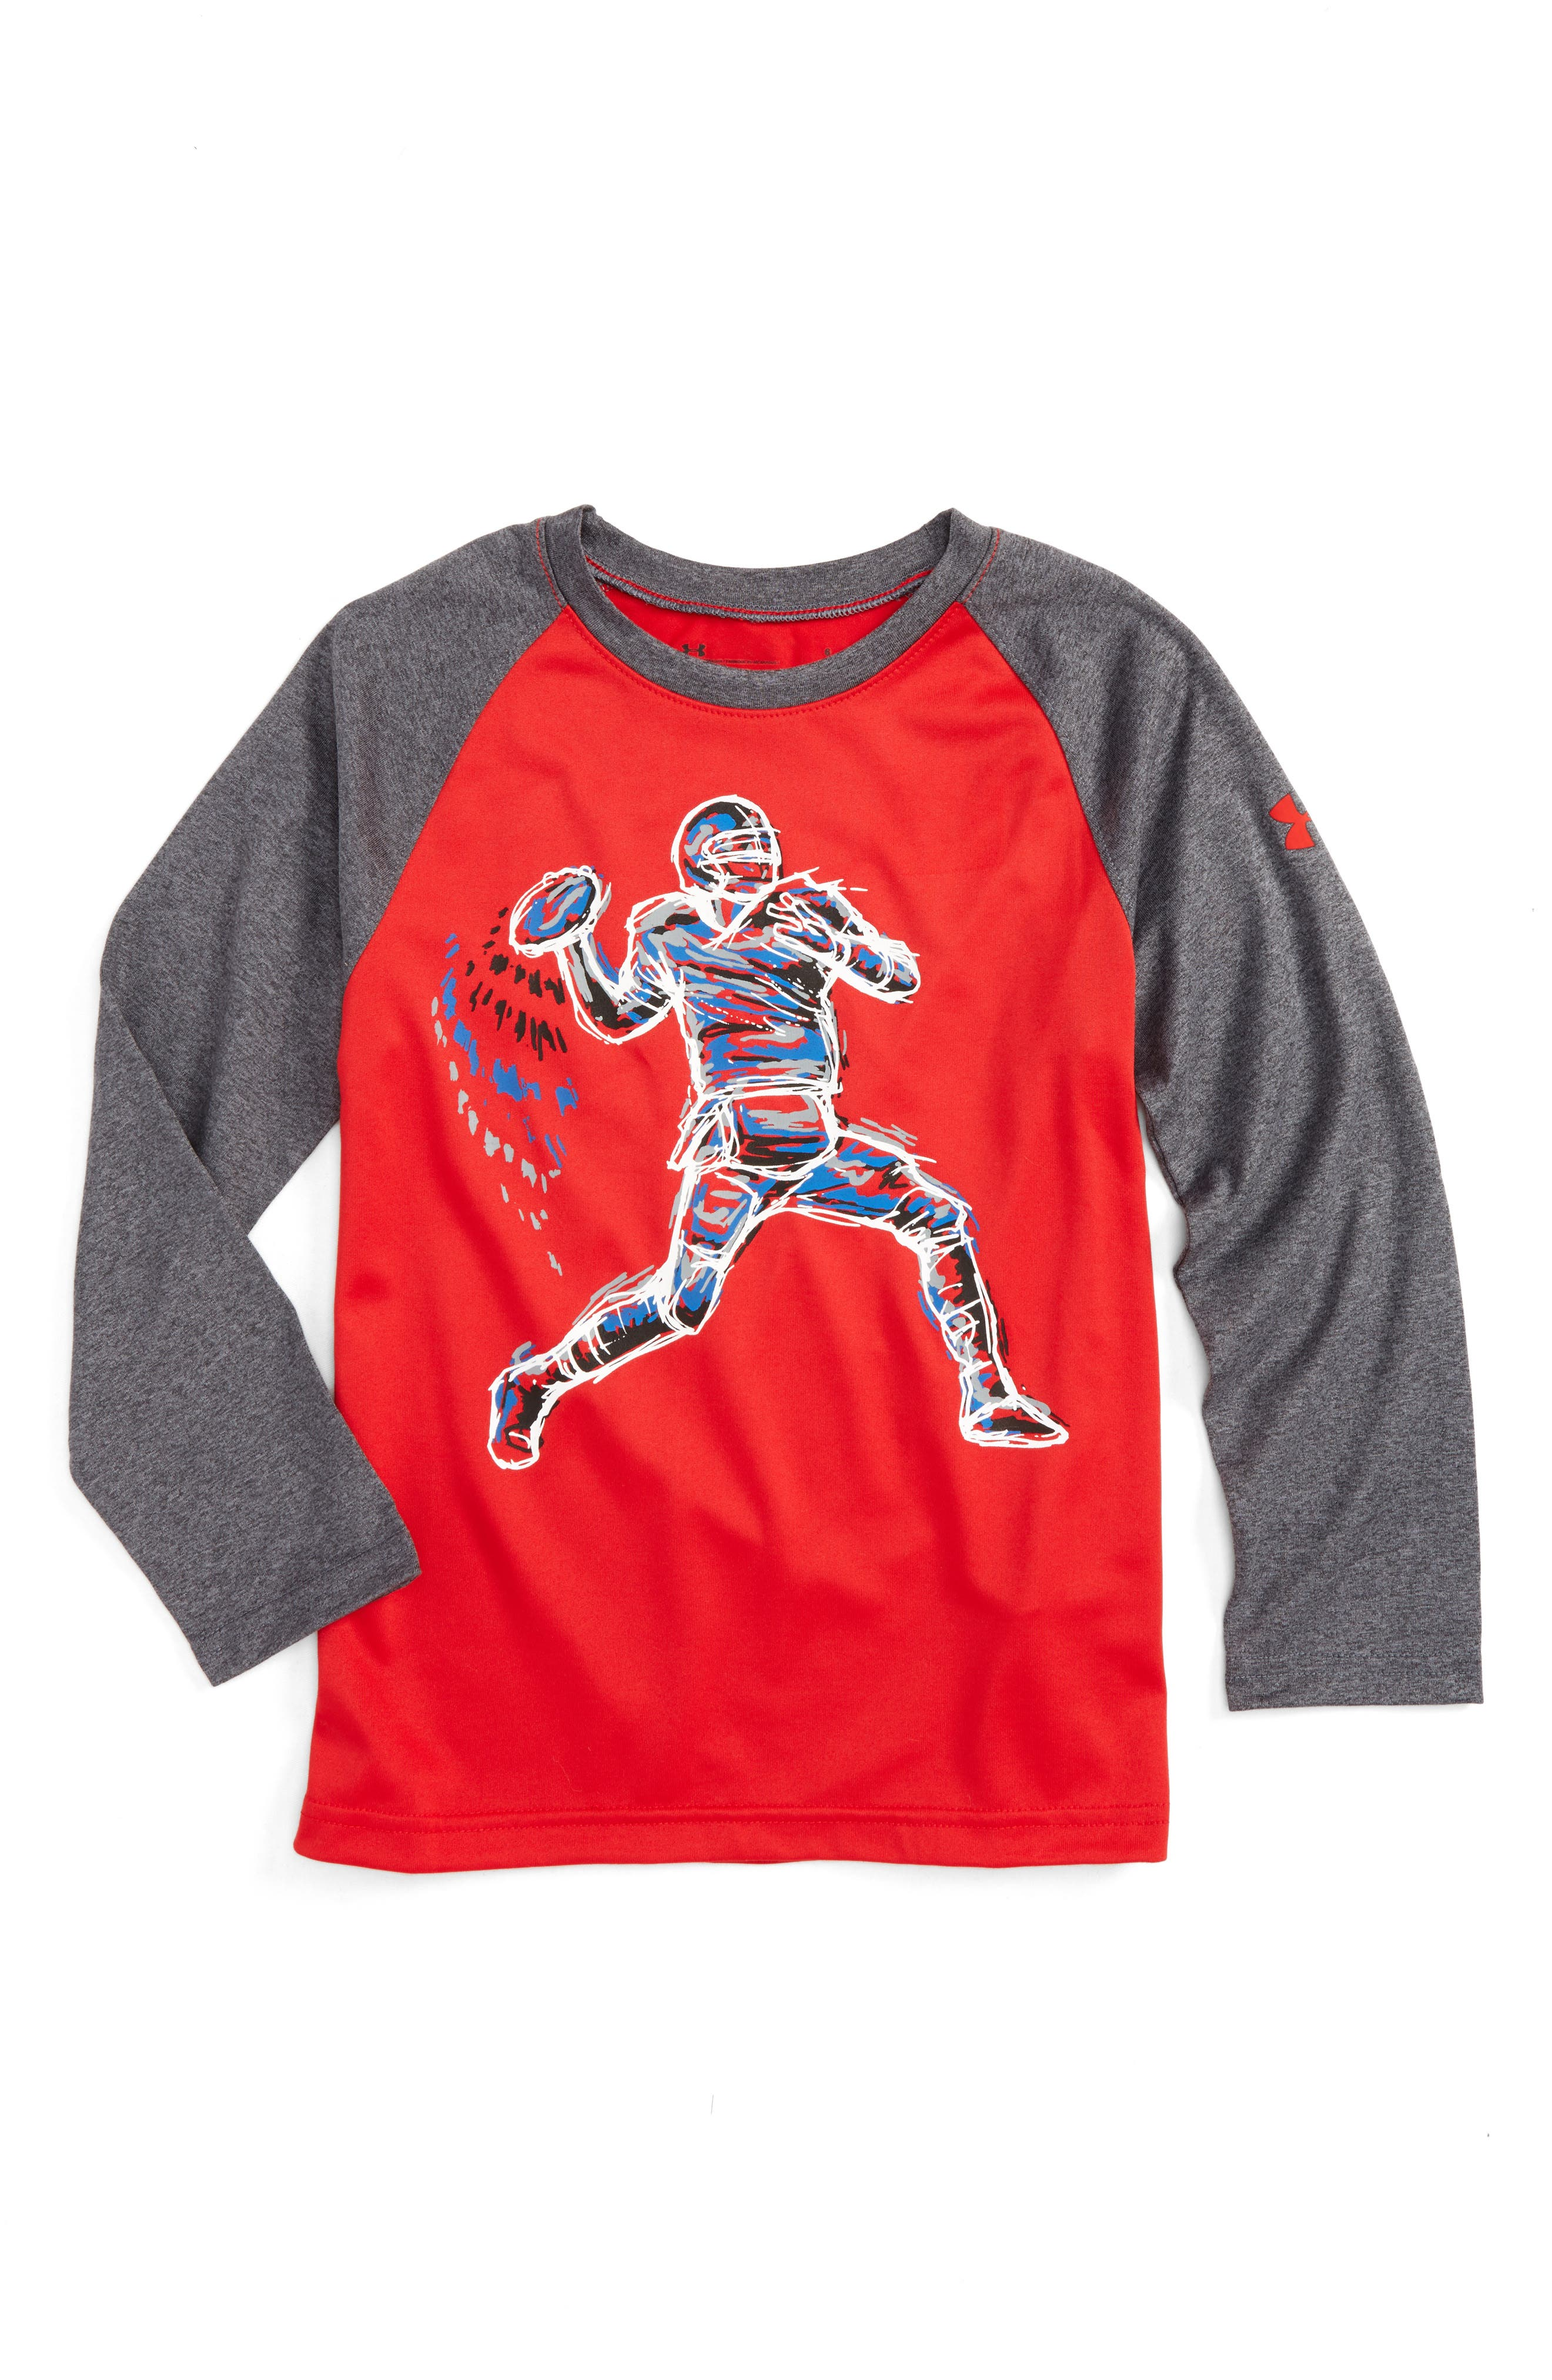 Illuminated QB Glow in the Dark T-Shirt,                         Main,                         color, Red